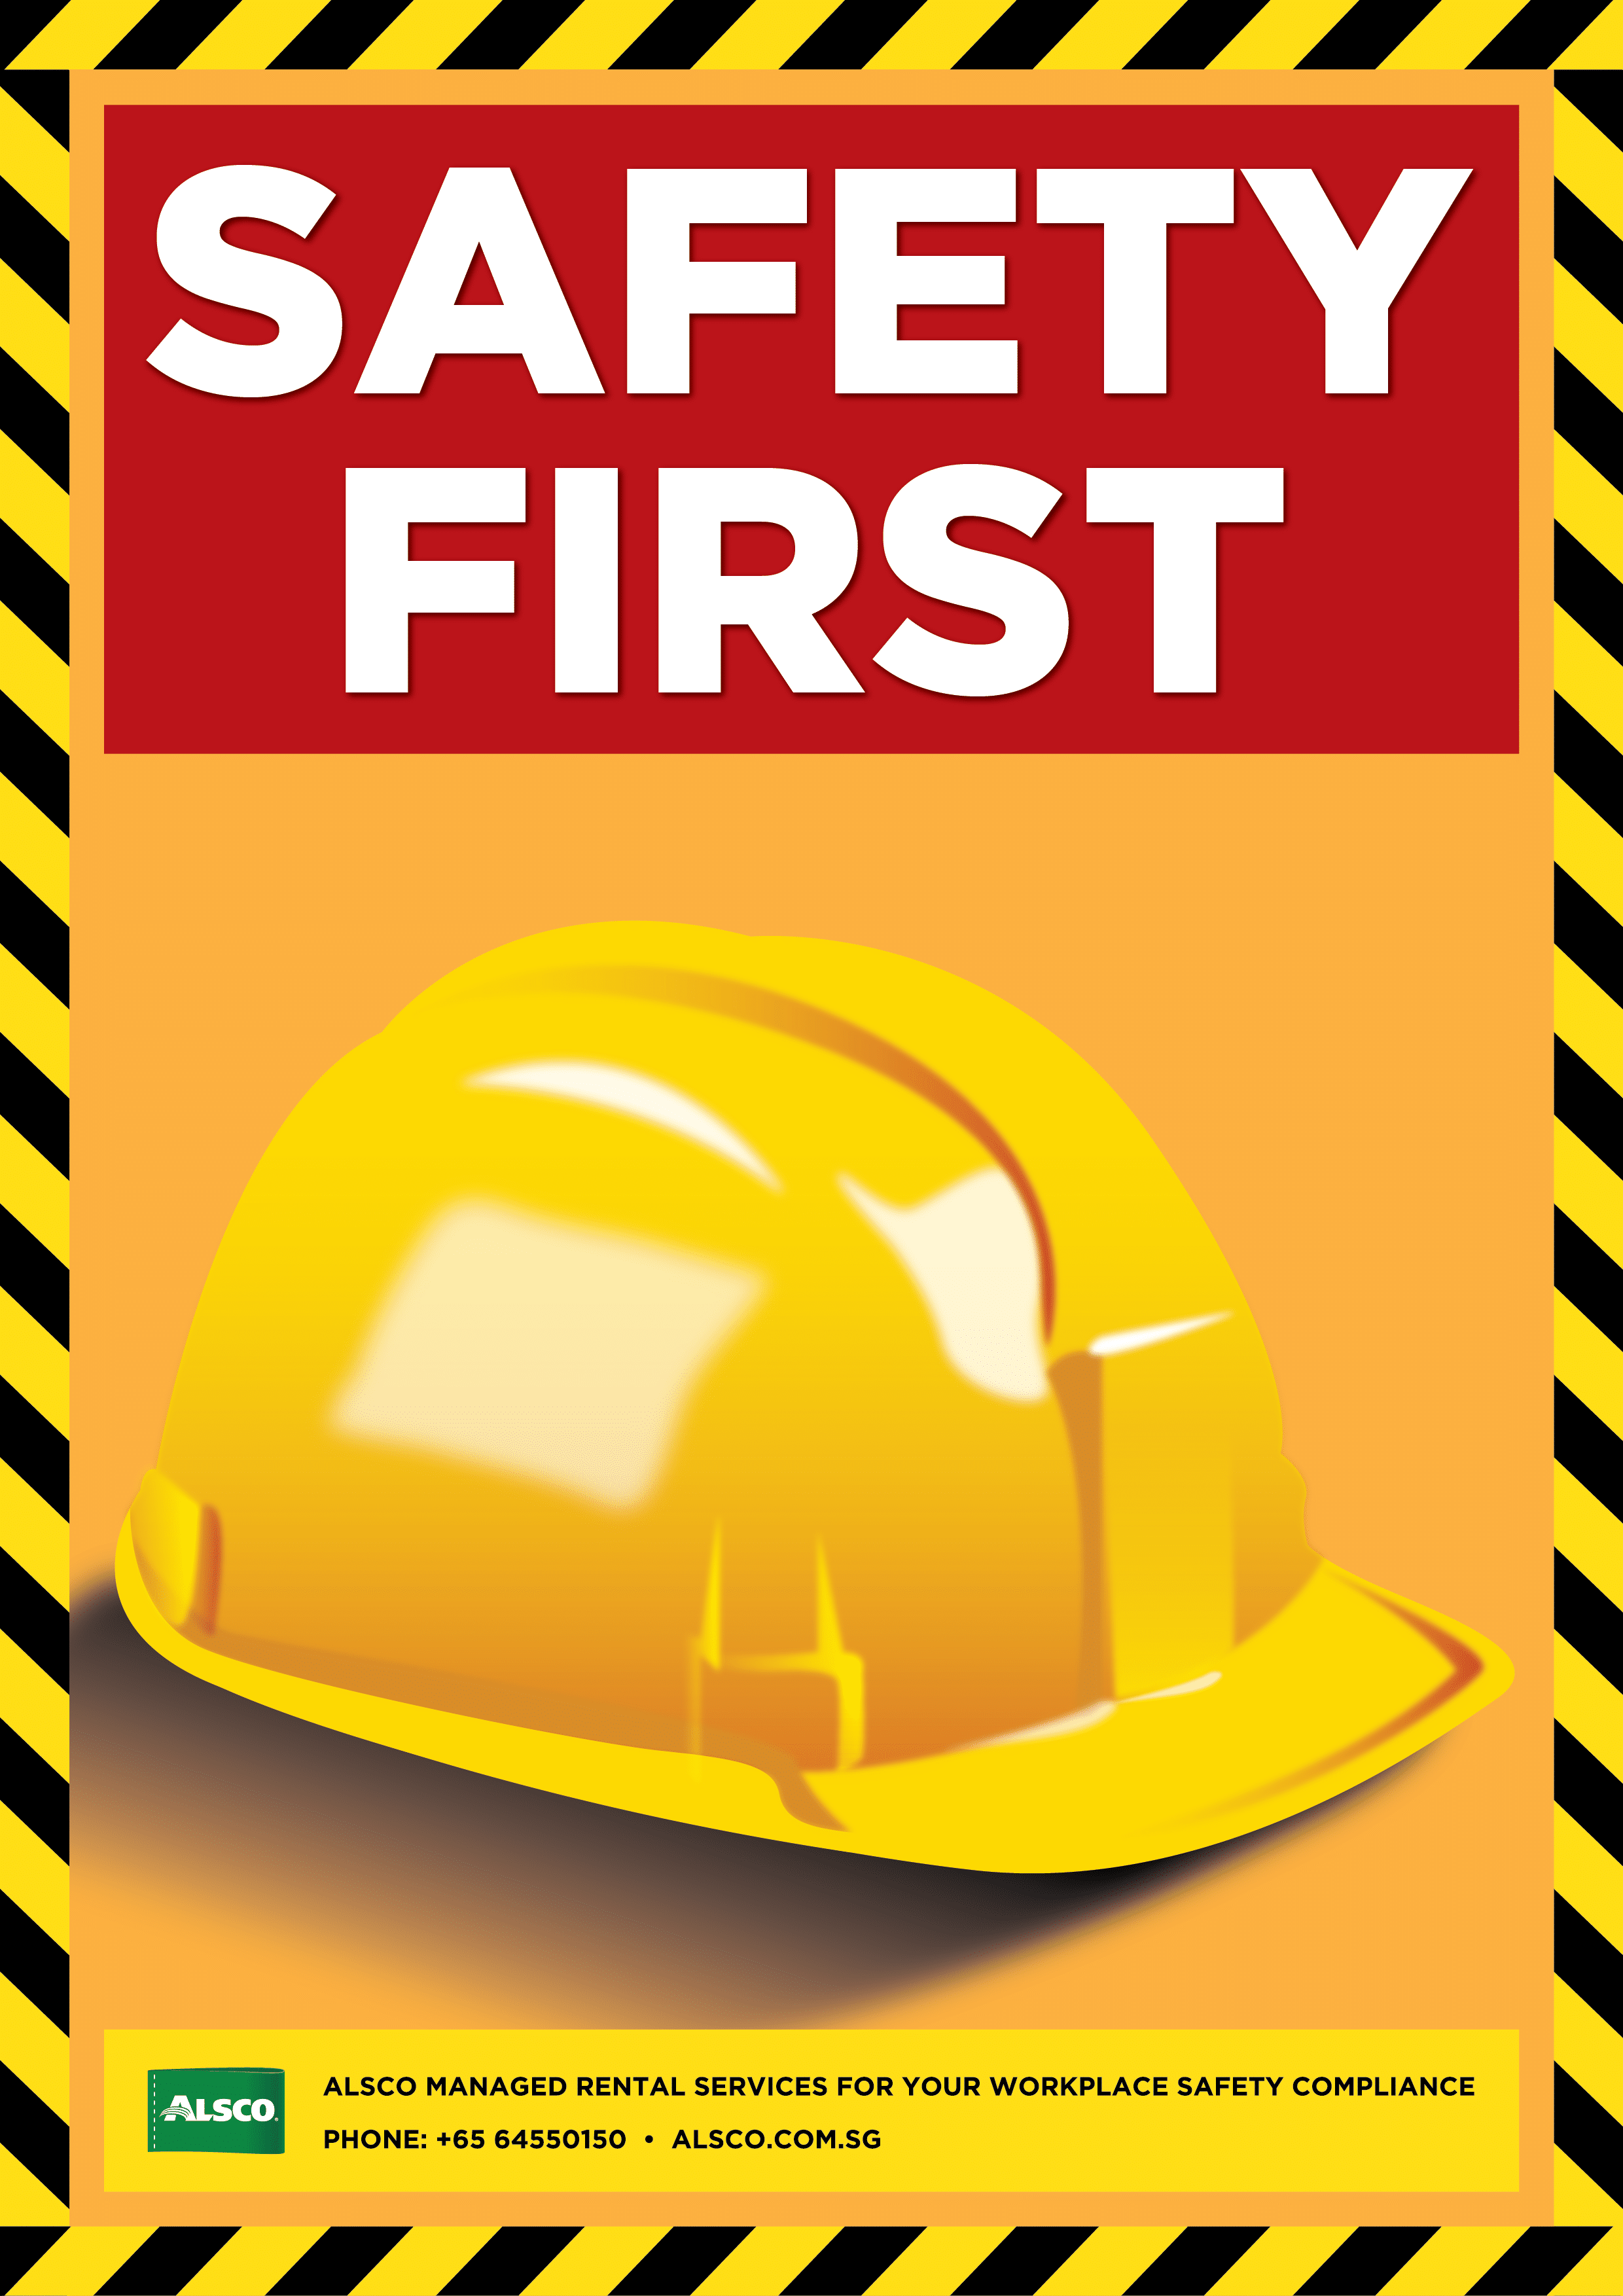 workplace safety posters able and printable alsco a3 size 4 mb ideal for printing